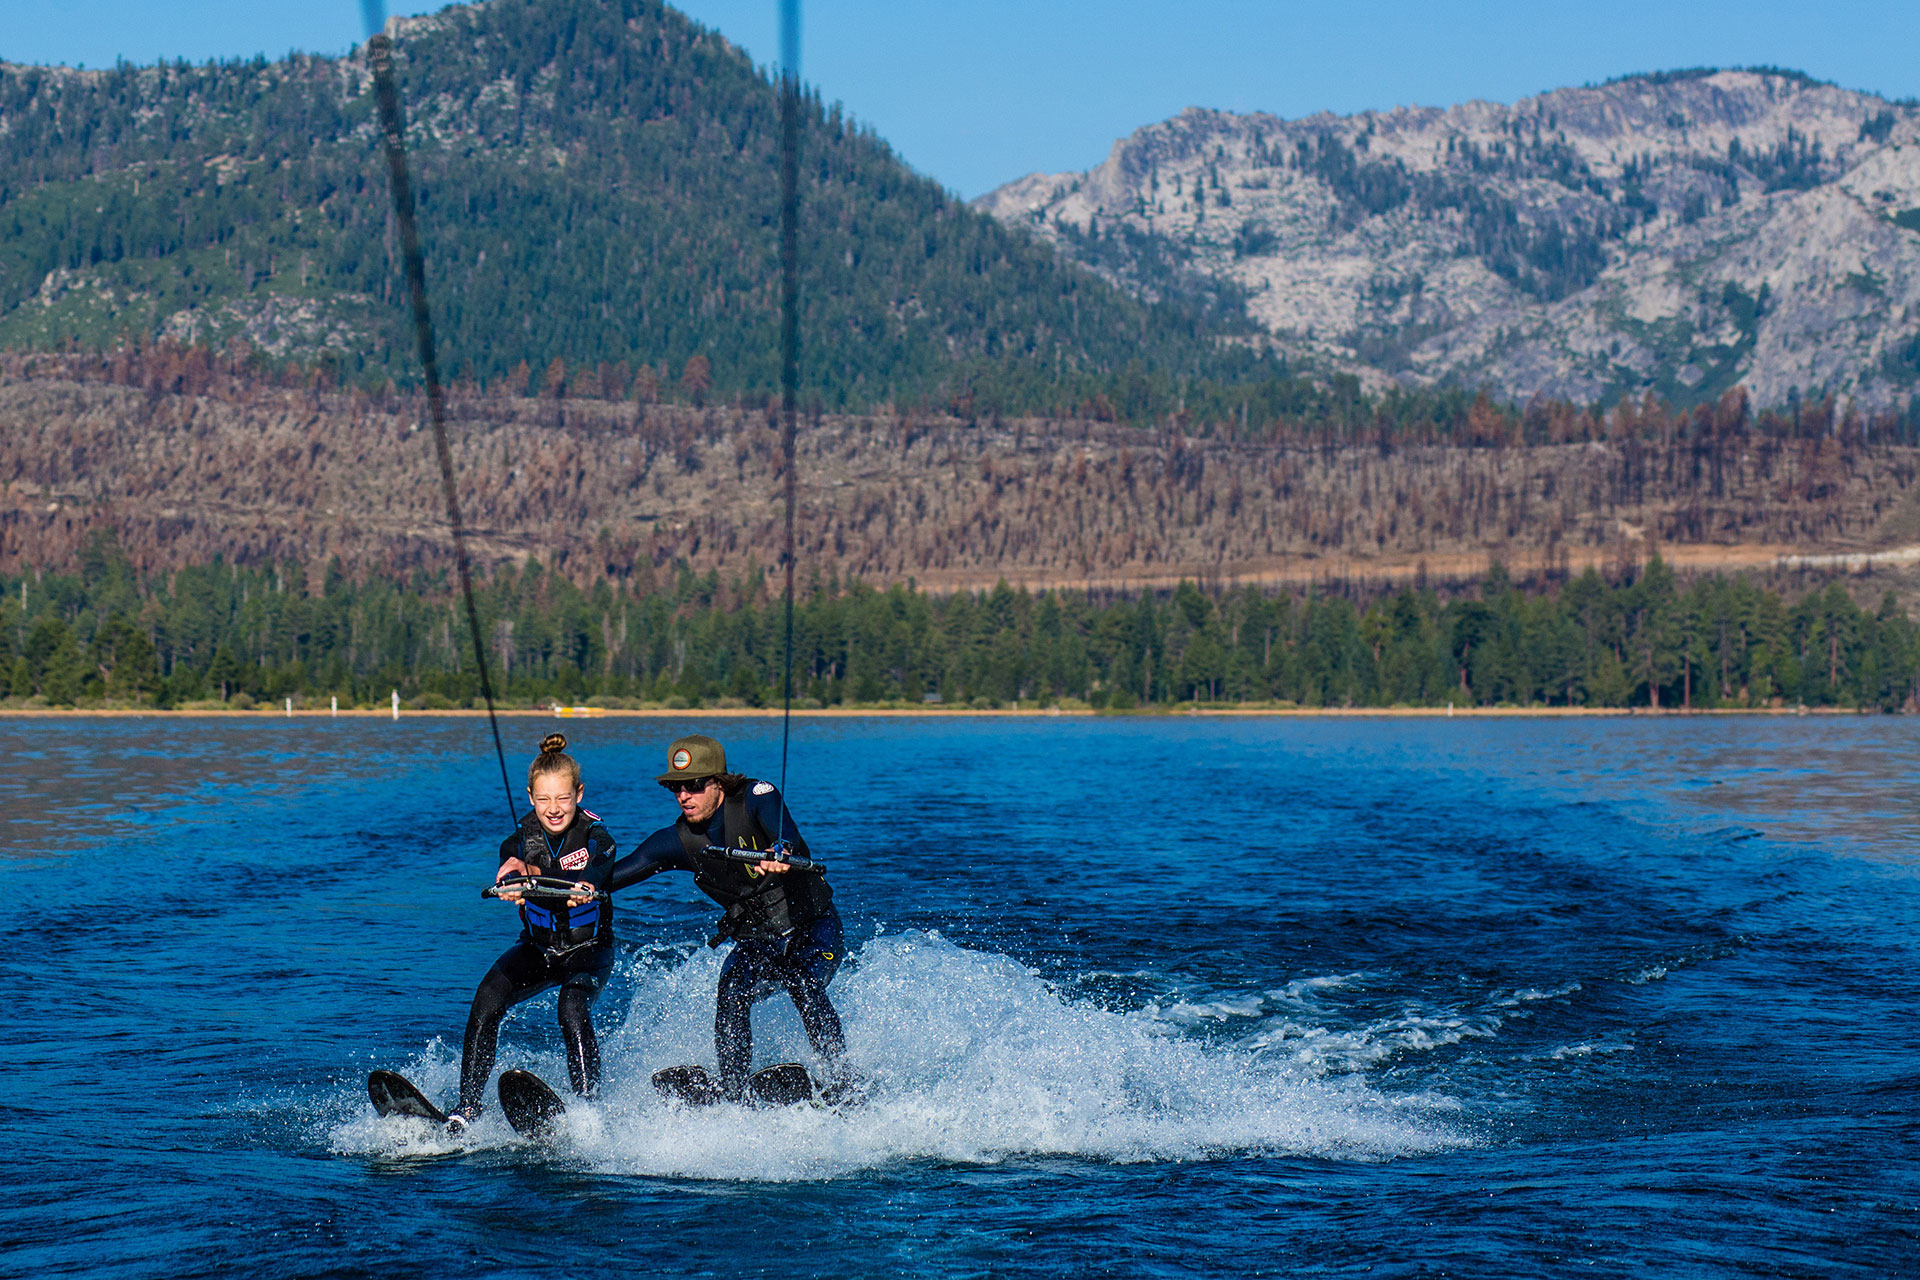 KJS_Waterski_School_030.jpg